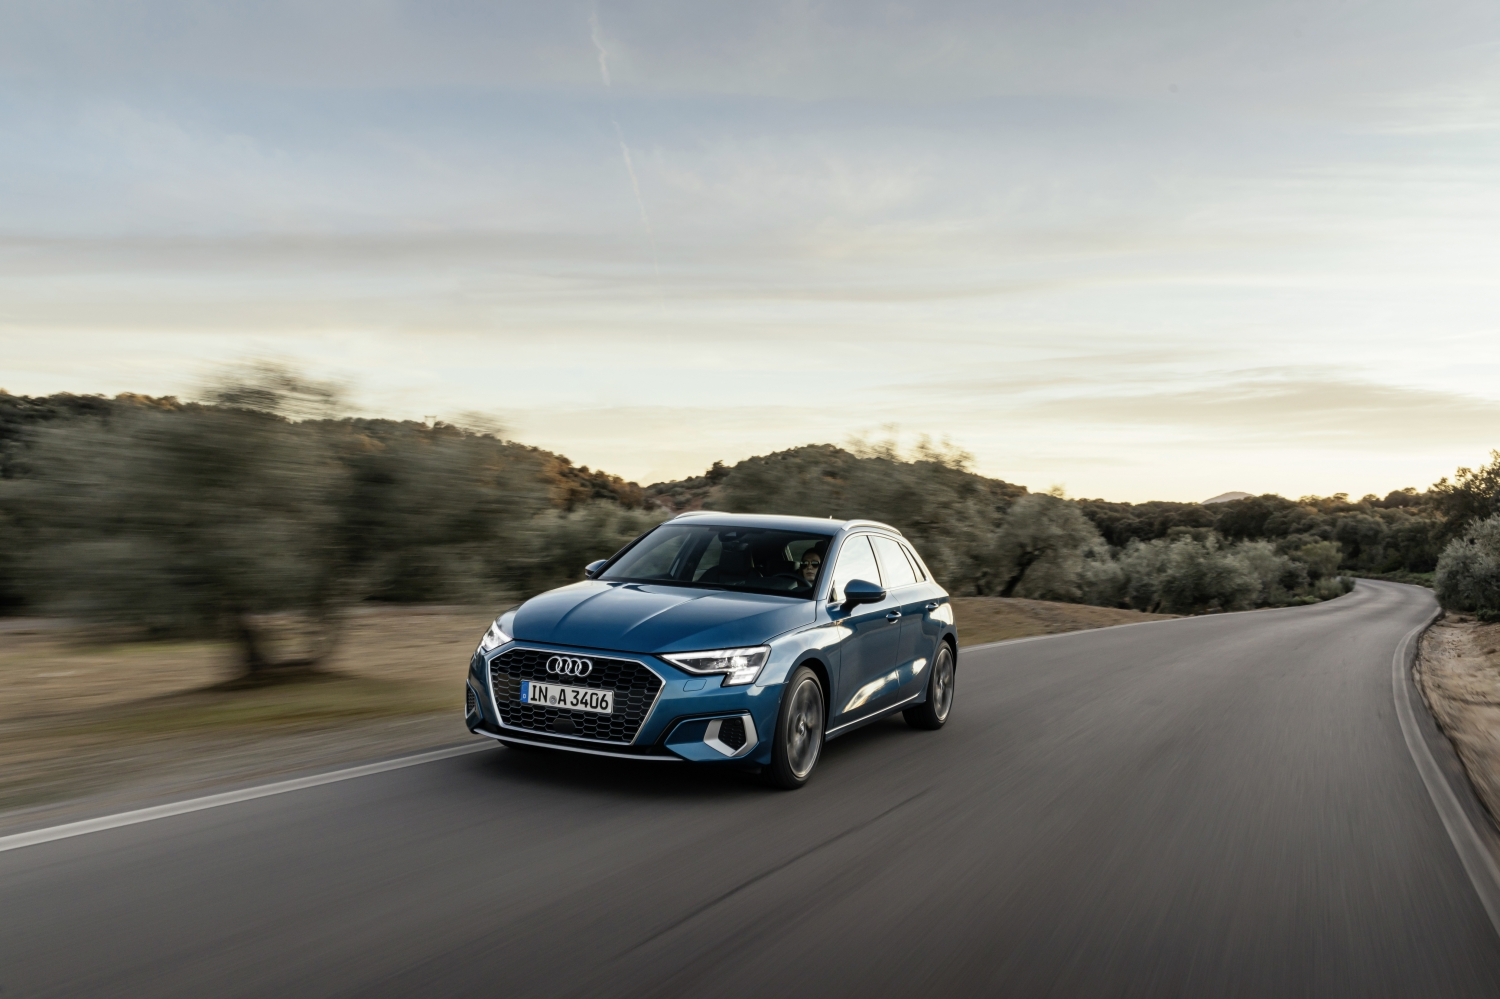 Audi A3 Sportback driving on a country road